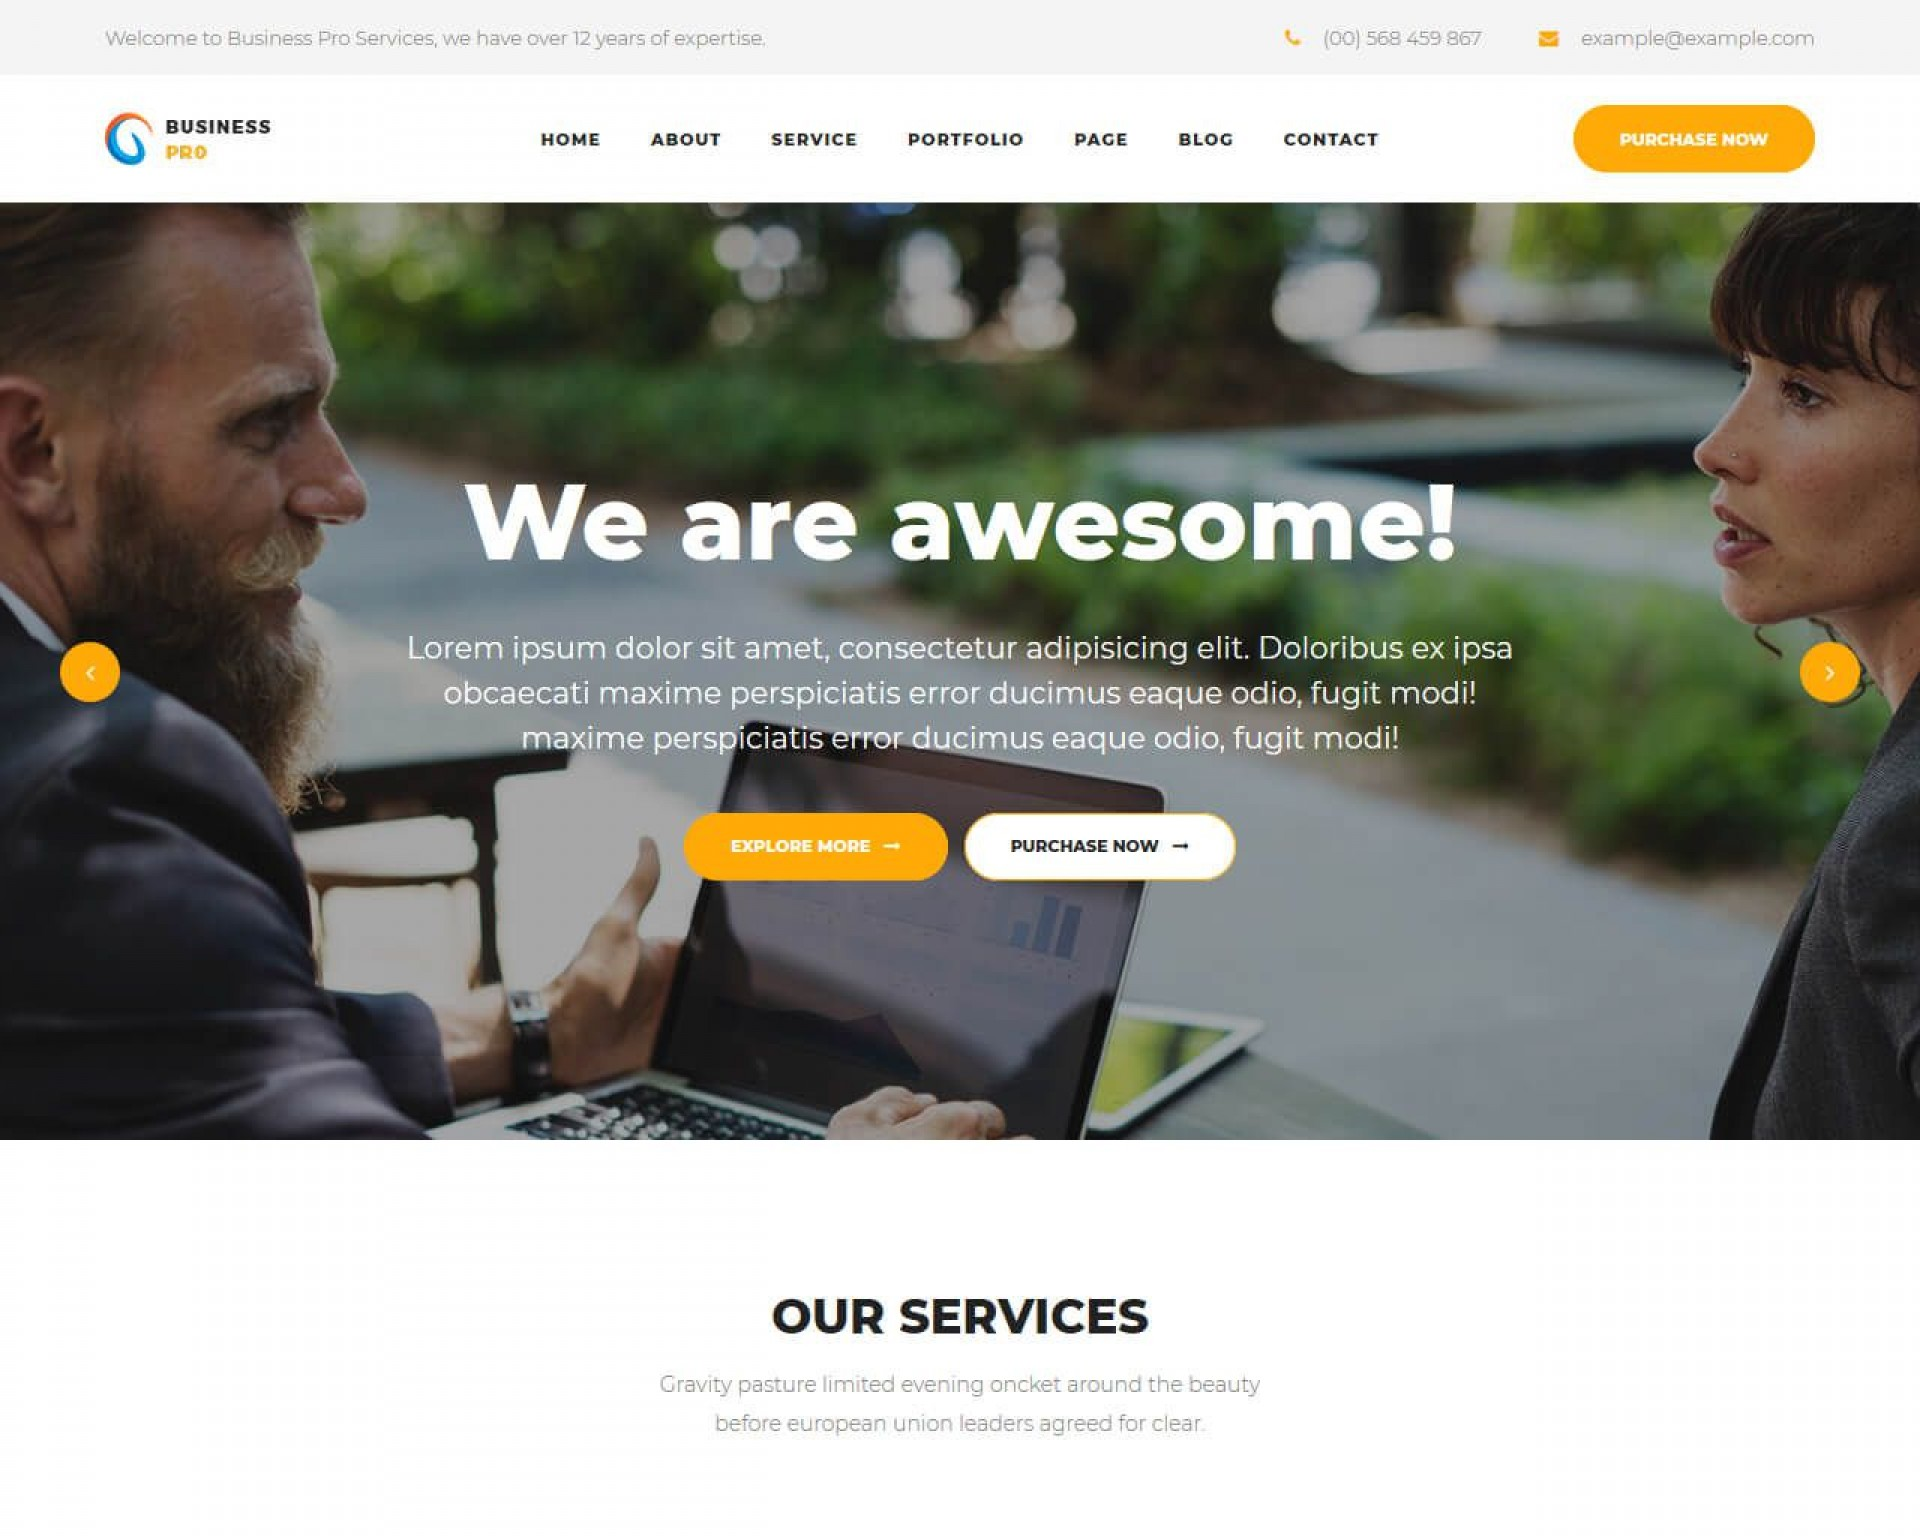 006 Impressive Professional Busines Website Template Free Download Wordpres Picture  Wordpress1920